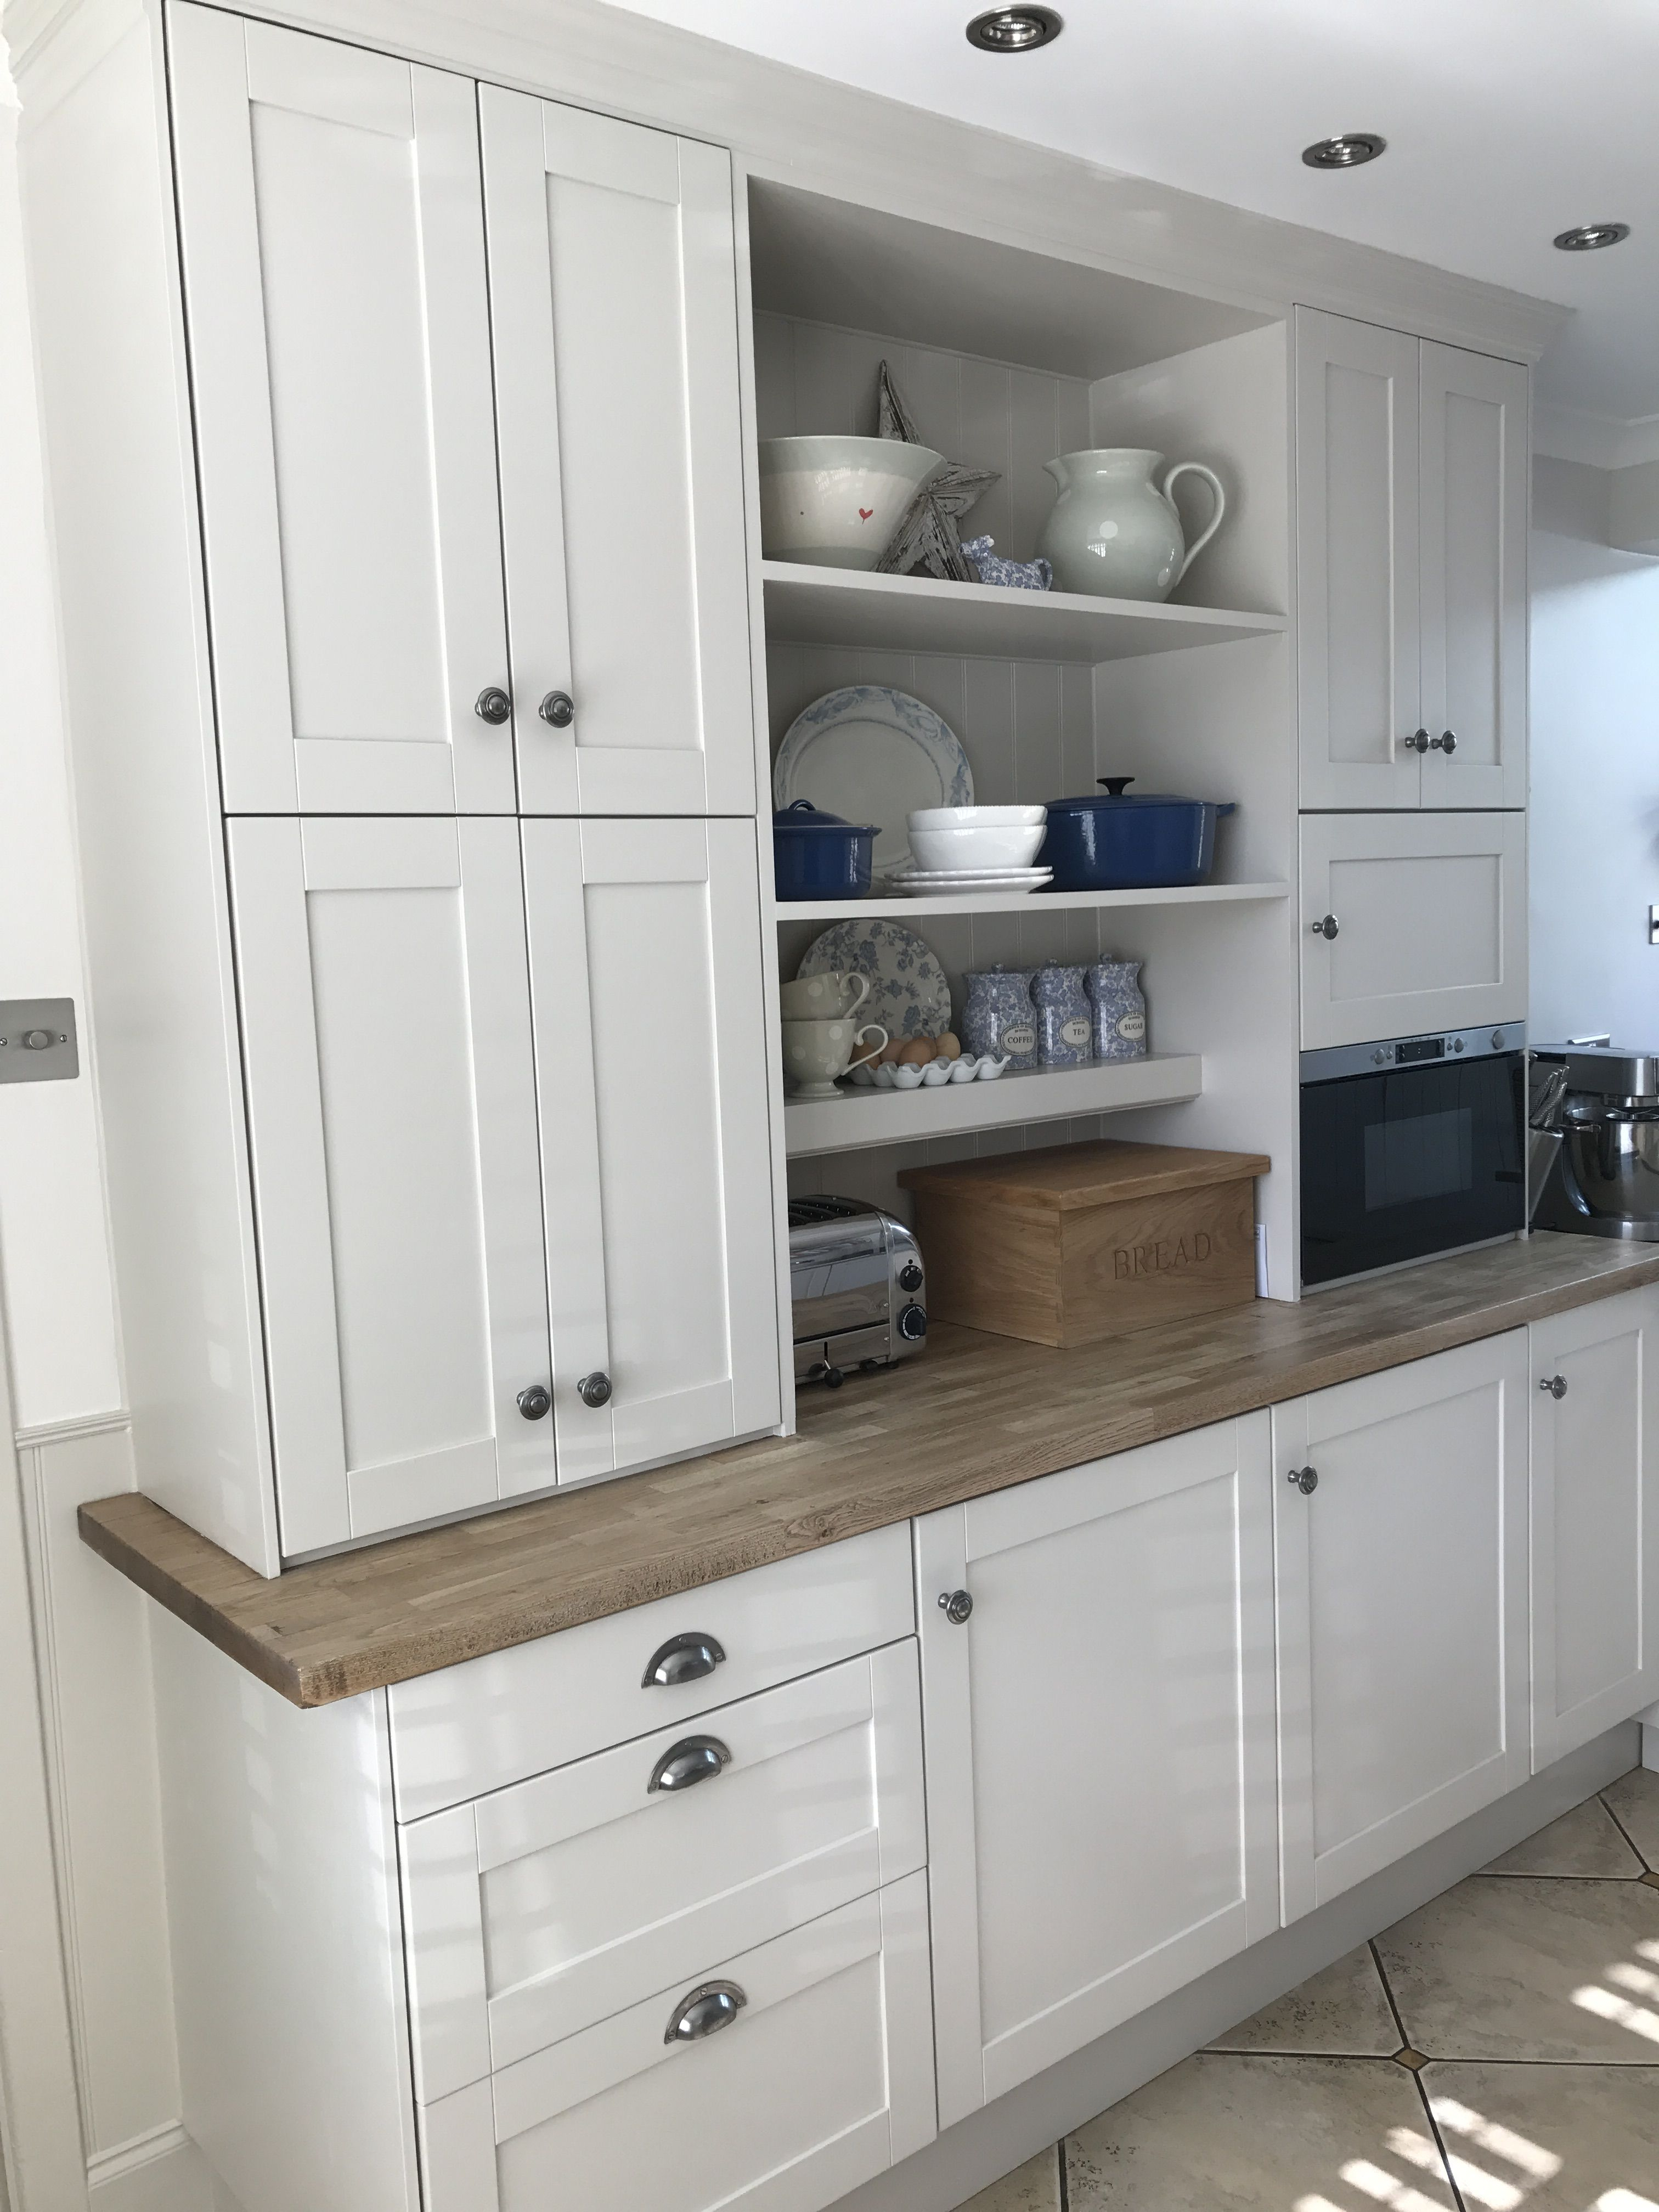 My finished kitchen makeover. Cast in style cup handles